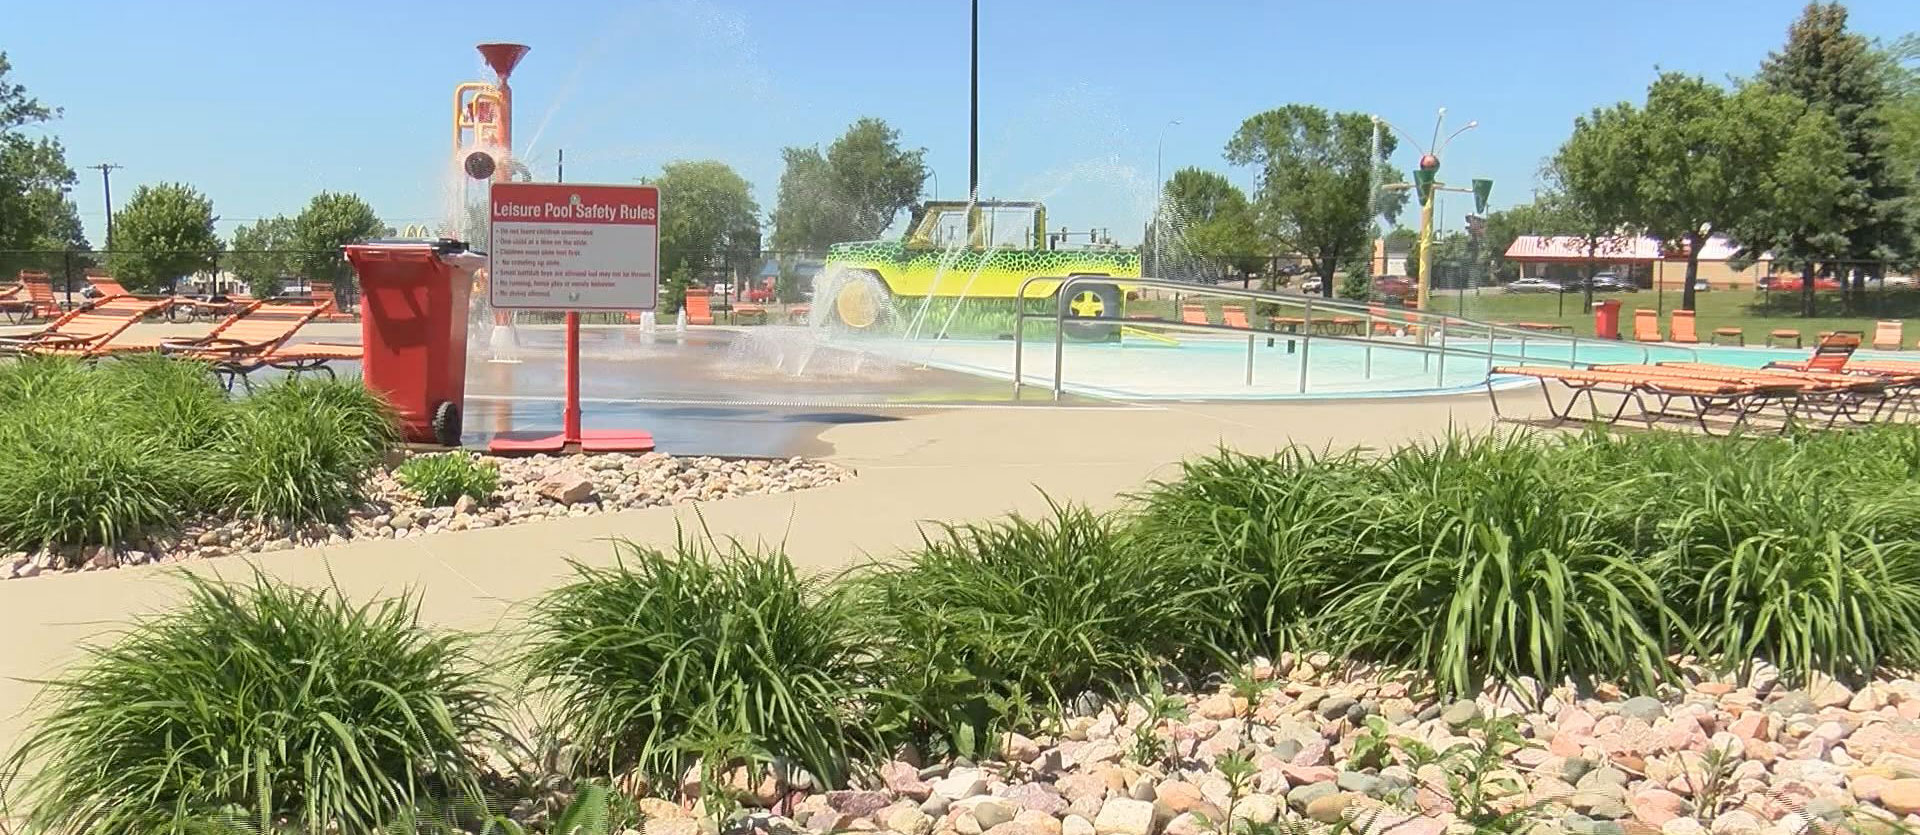 Outdoor pools get ready to open for Outdoor pools open